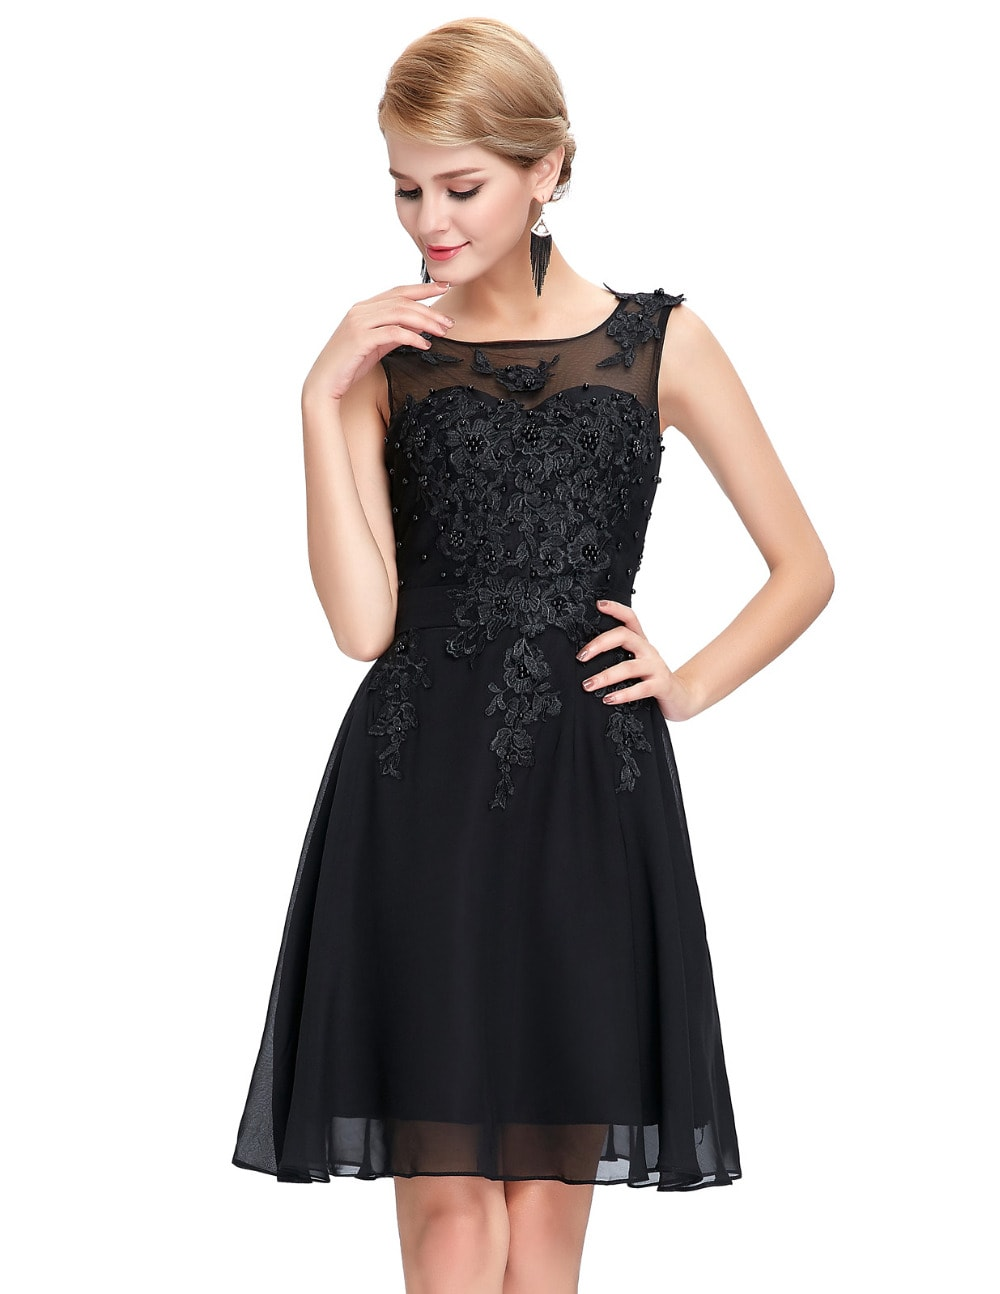 Shop affordable beaded dresses perfect for wedding receptions, prom night, cocktail parties, and more, available in petite and plus sizes. Little Black Dresses Little White Dresses Maternity Friendly Dresses Work Dresses Shop by Occasion Our collection offers everything from beaded cocktail dresses.